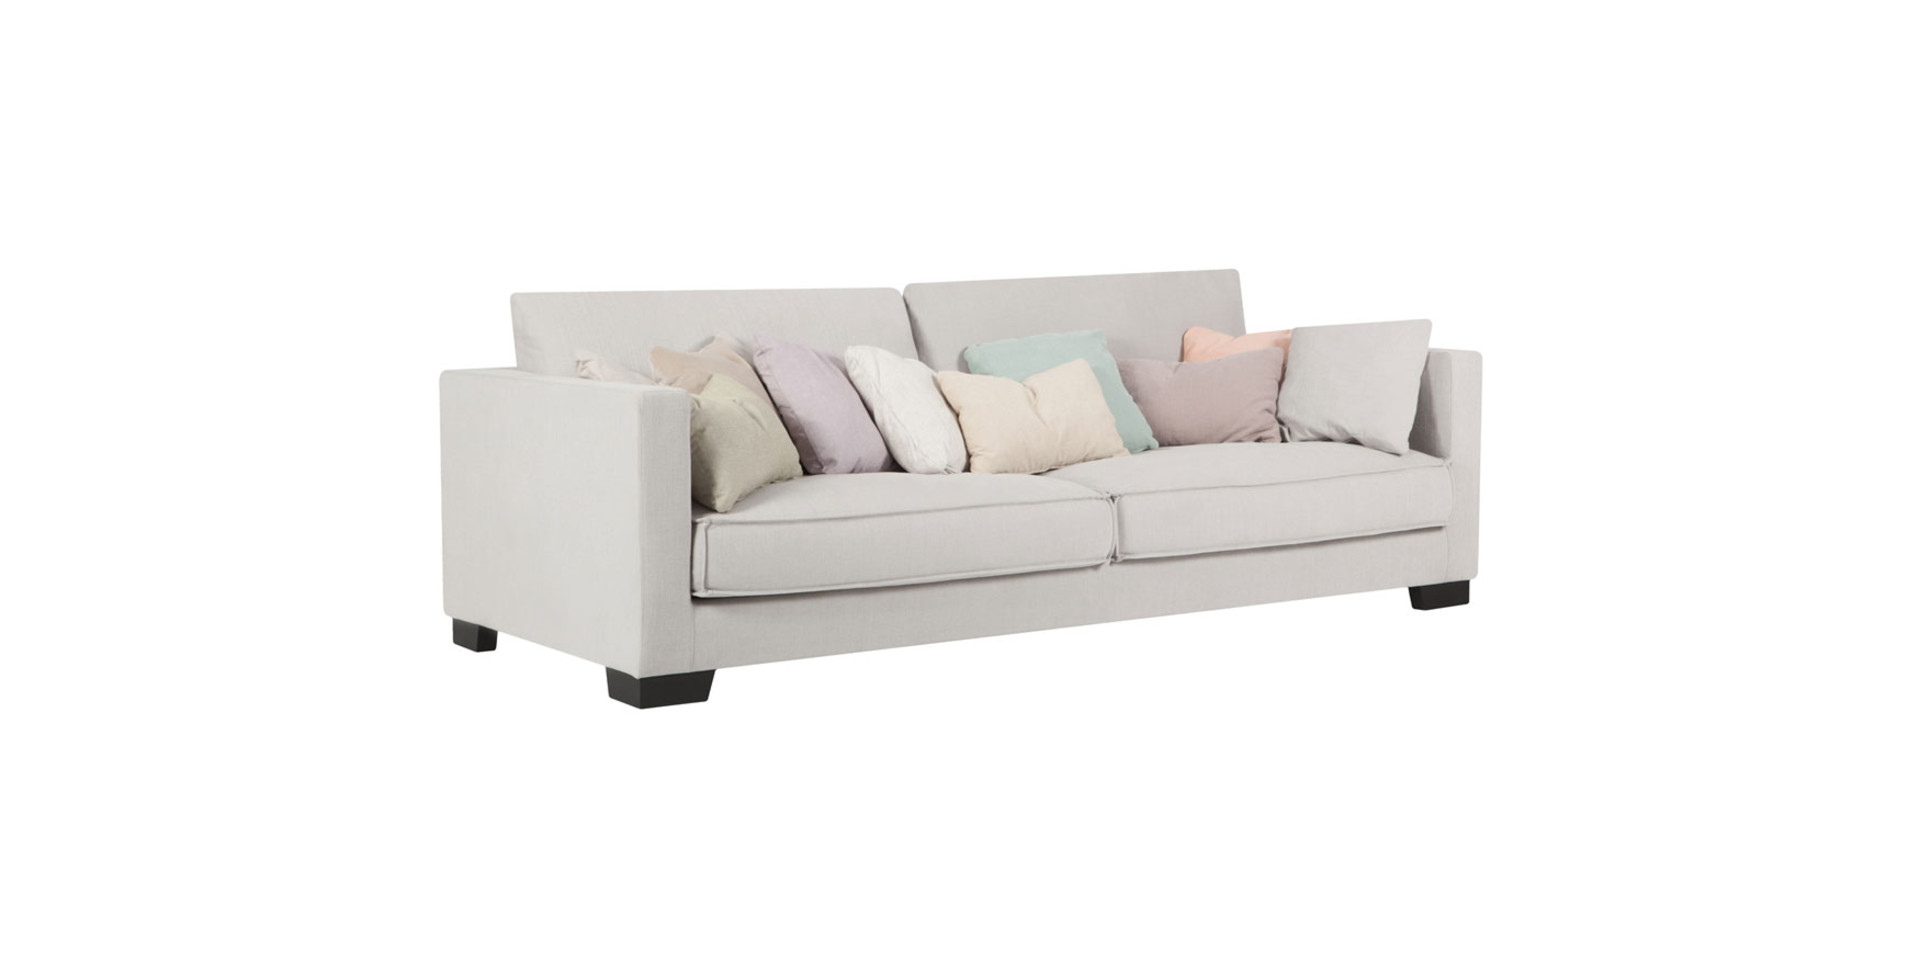 sits-cloud-canape_3seater_caleido3790_light_beige_2